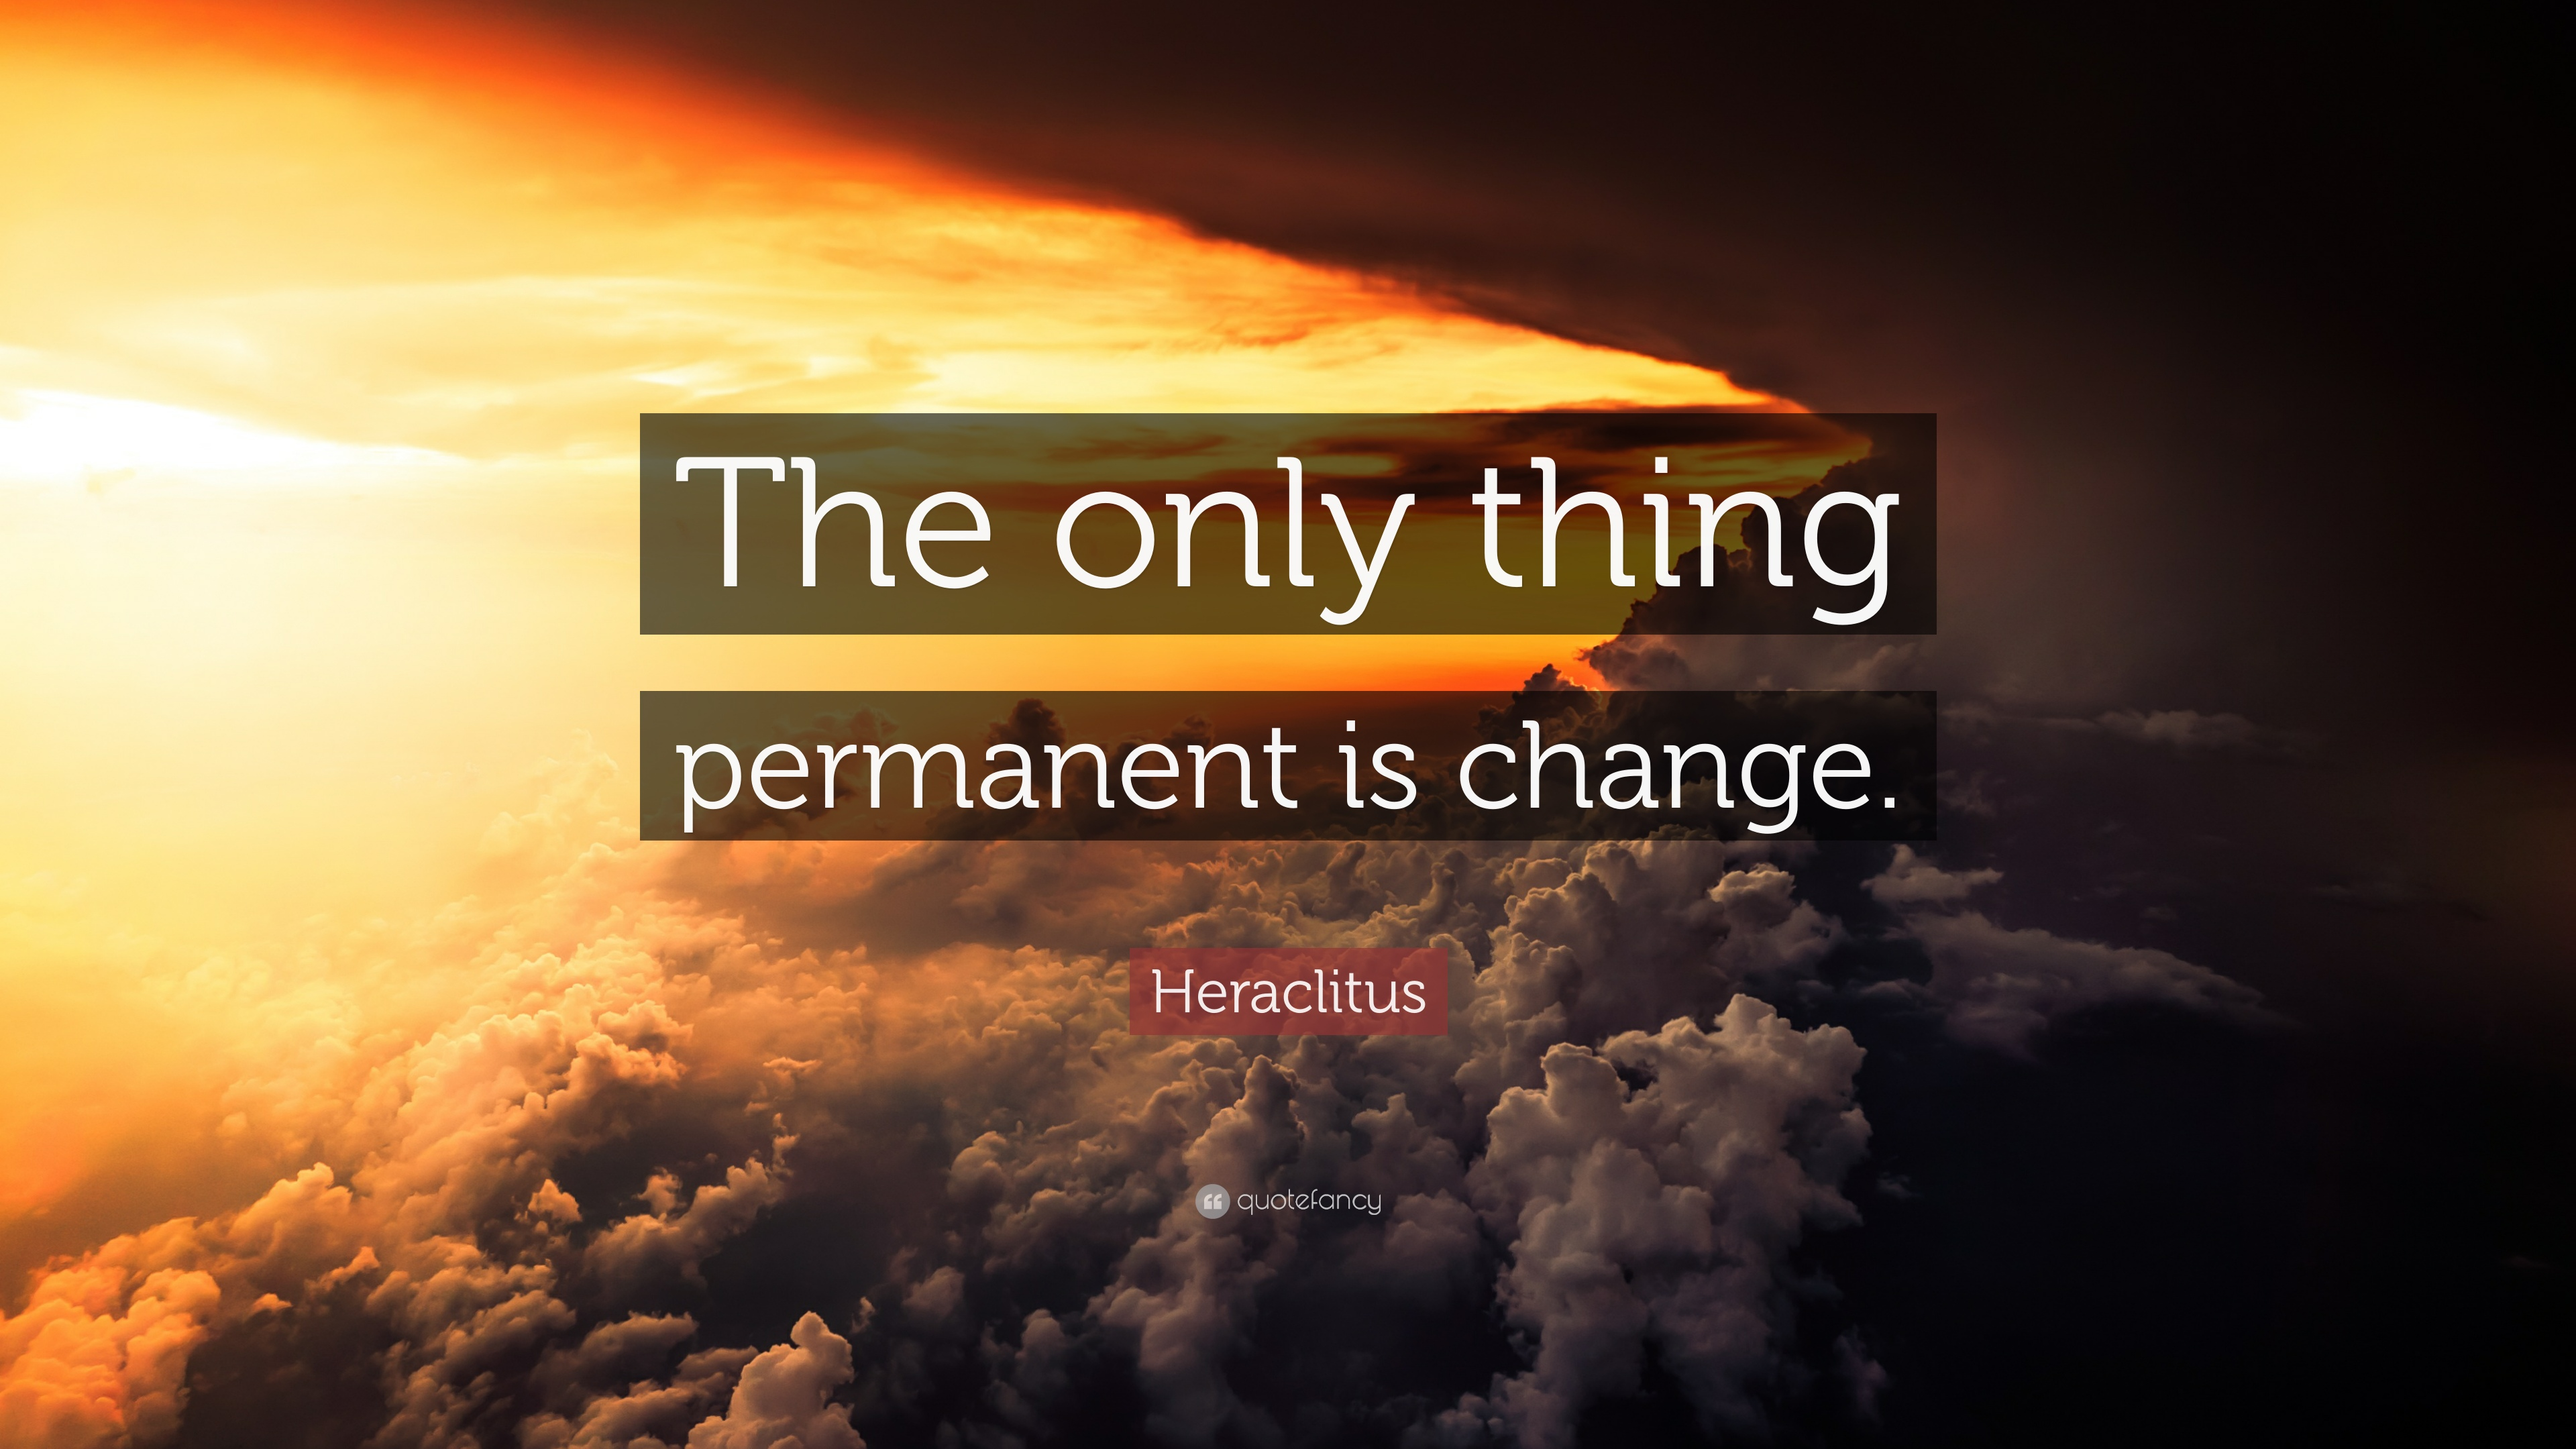 Heraclitus Quote: The only thing permanent is change